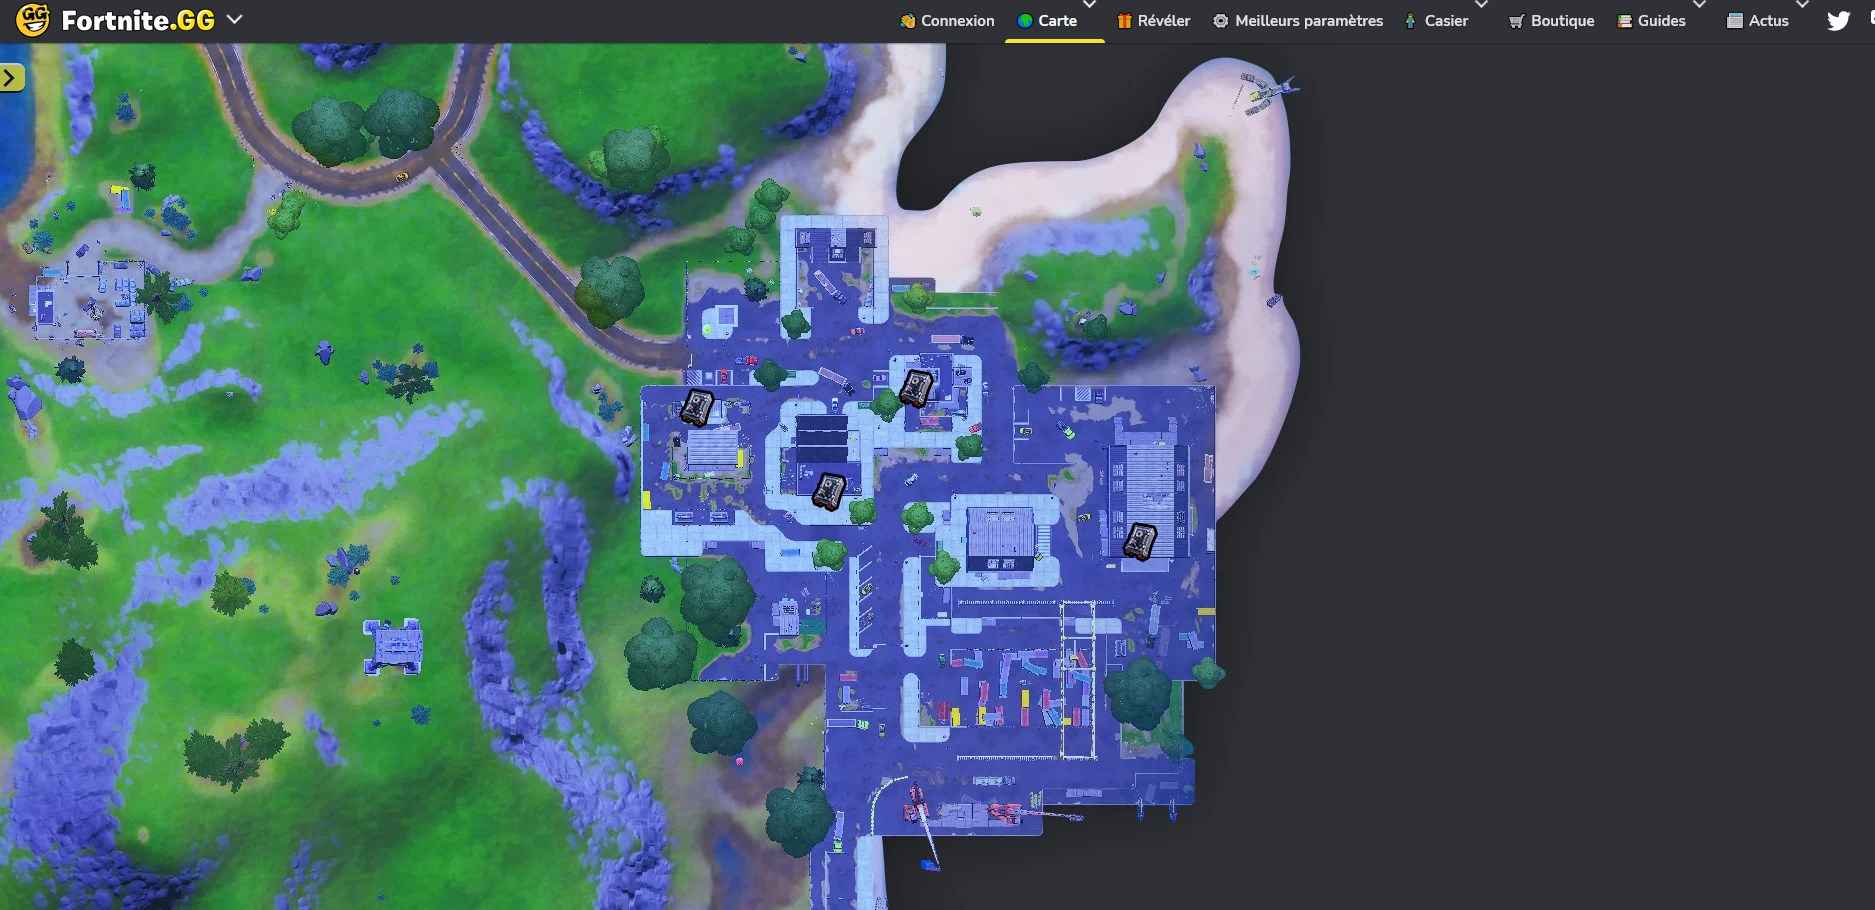 coffre-fort-emplacement-fortnite-3